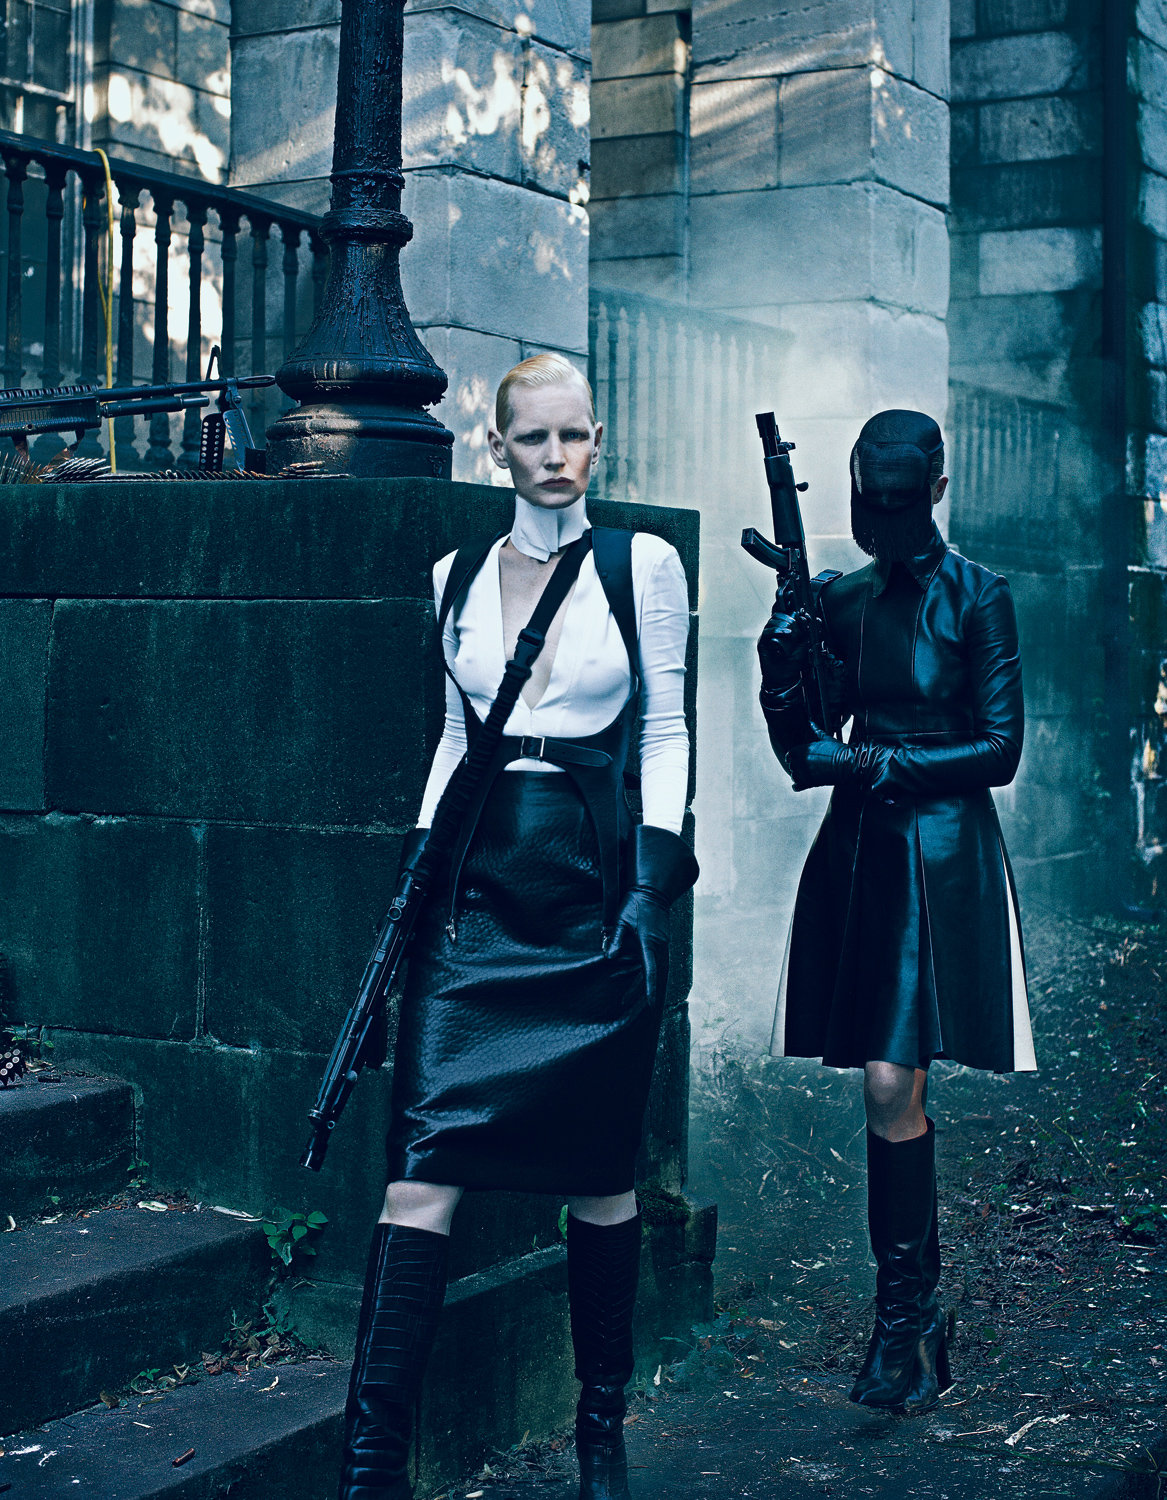 Steven Klein - Kirsten Owen and Christina Kruse